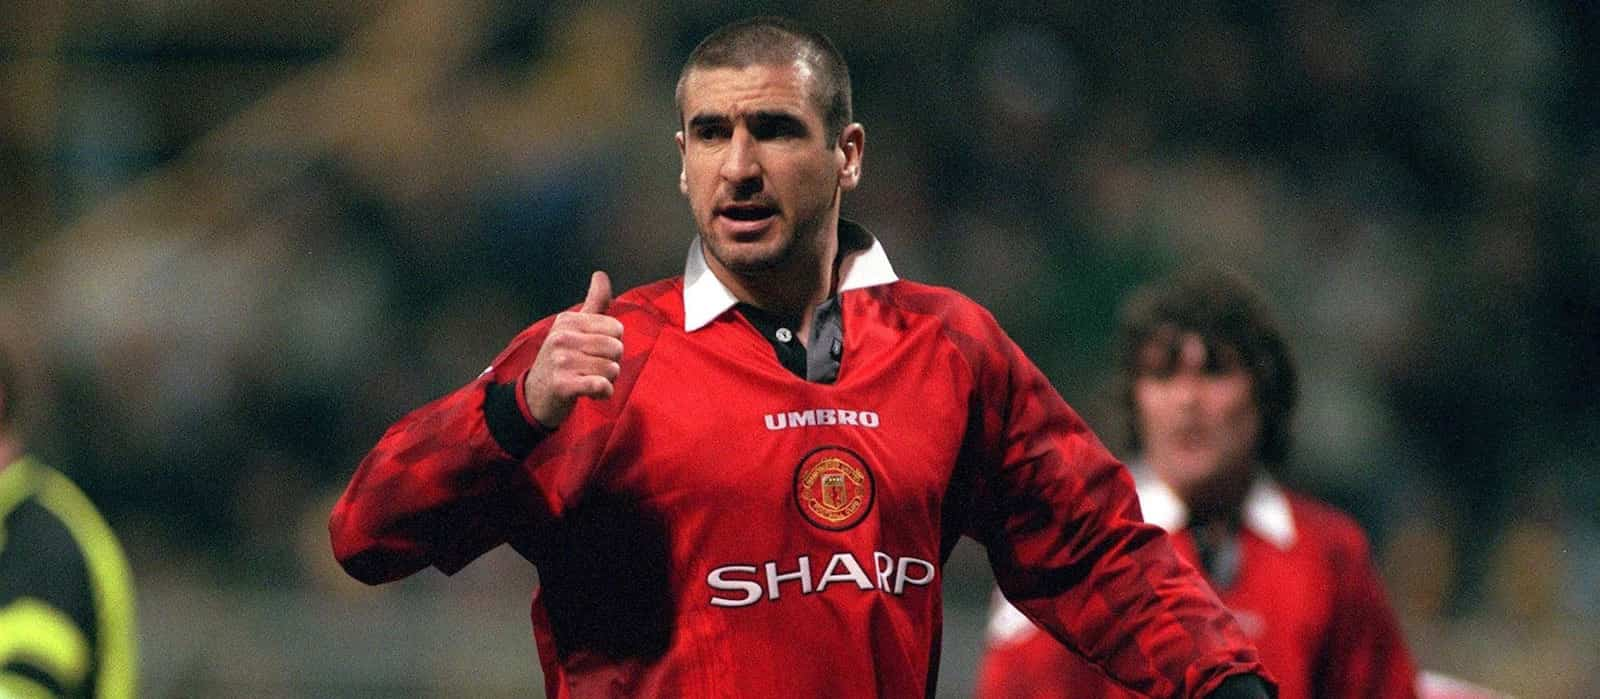 Eric Cantona criticises Manchester United's style of play under Jose Mourinho